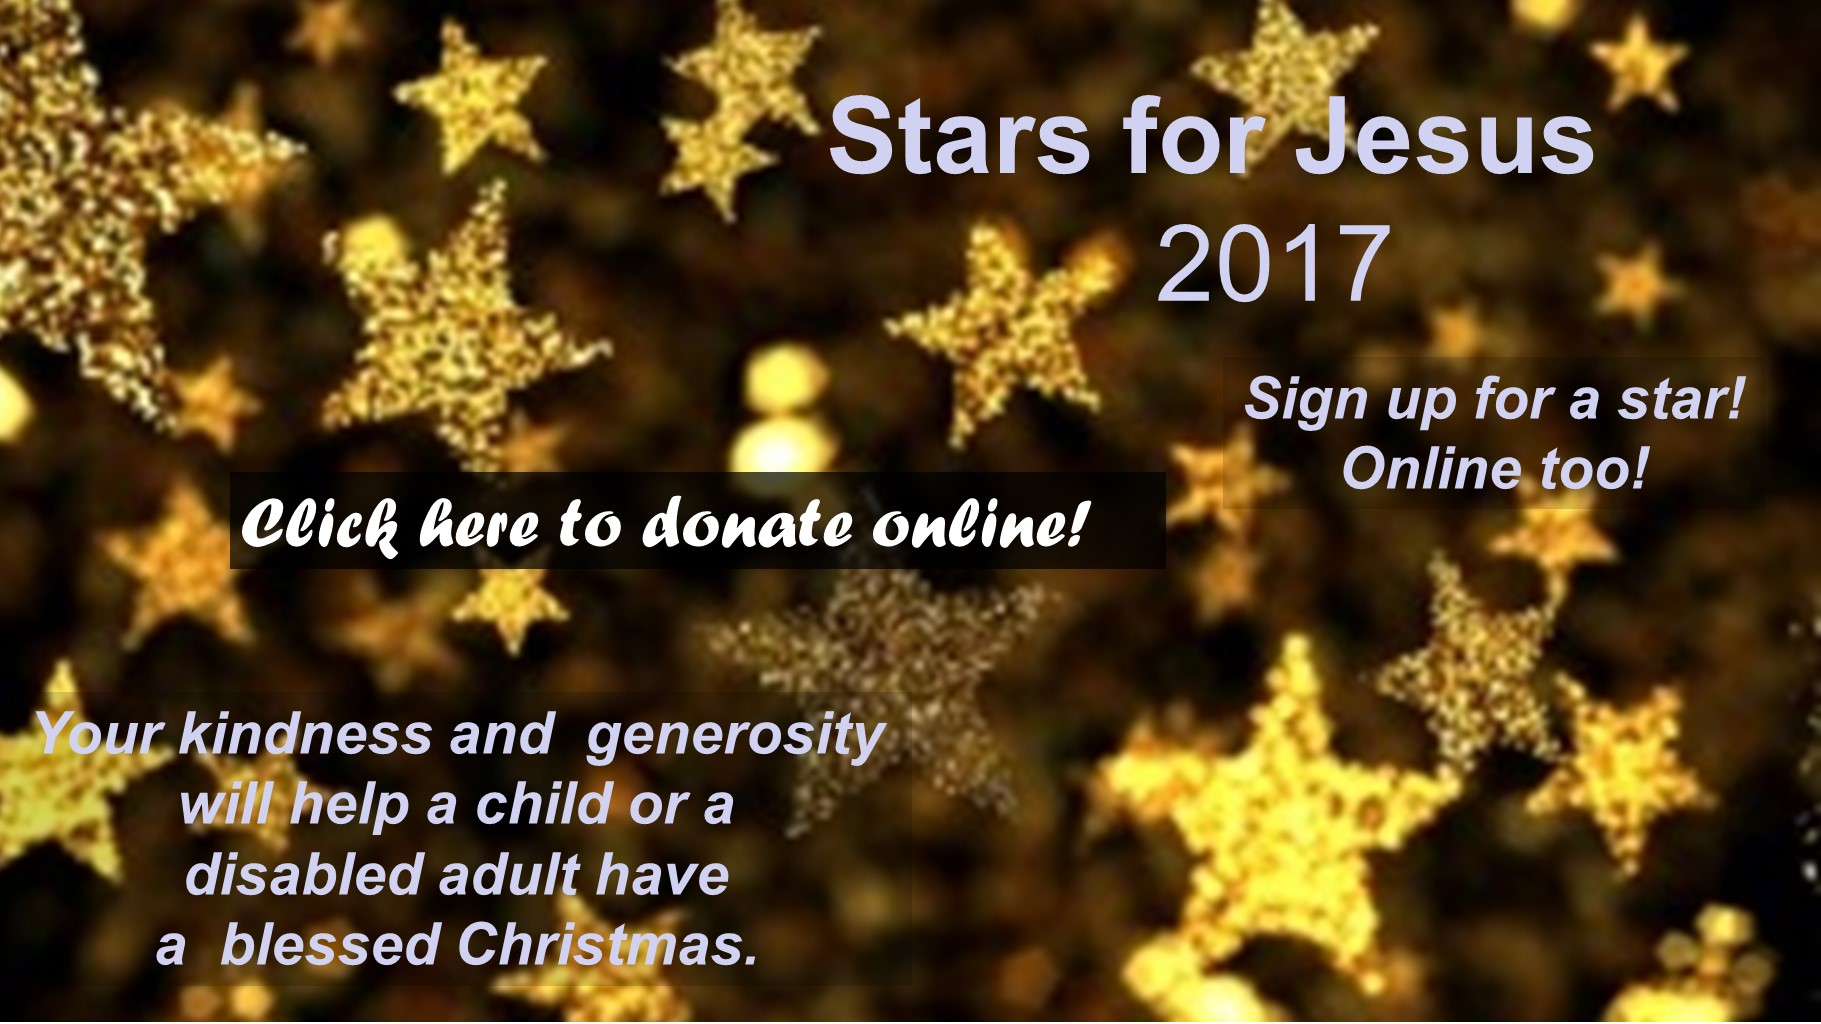 2017 Online Stars for Jesus